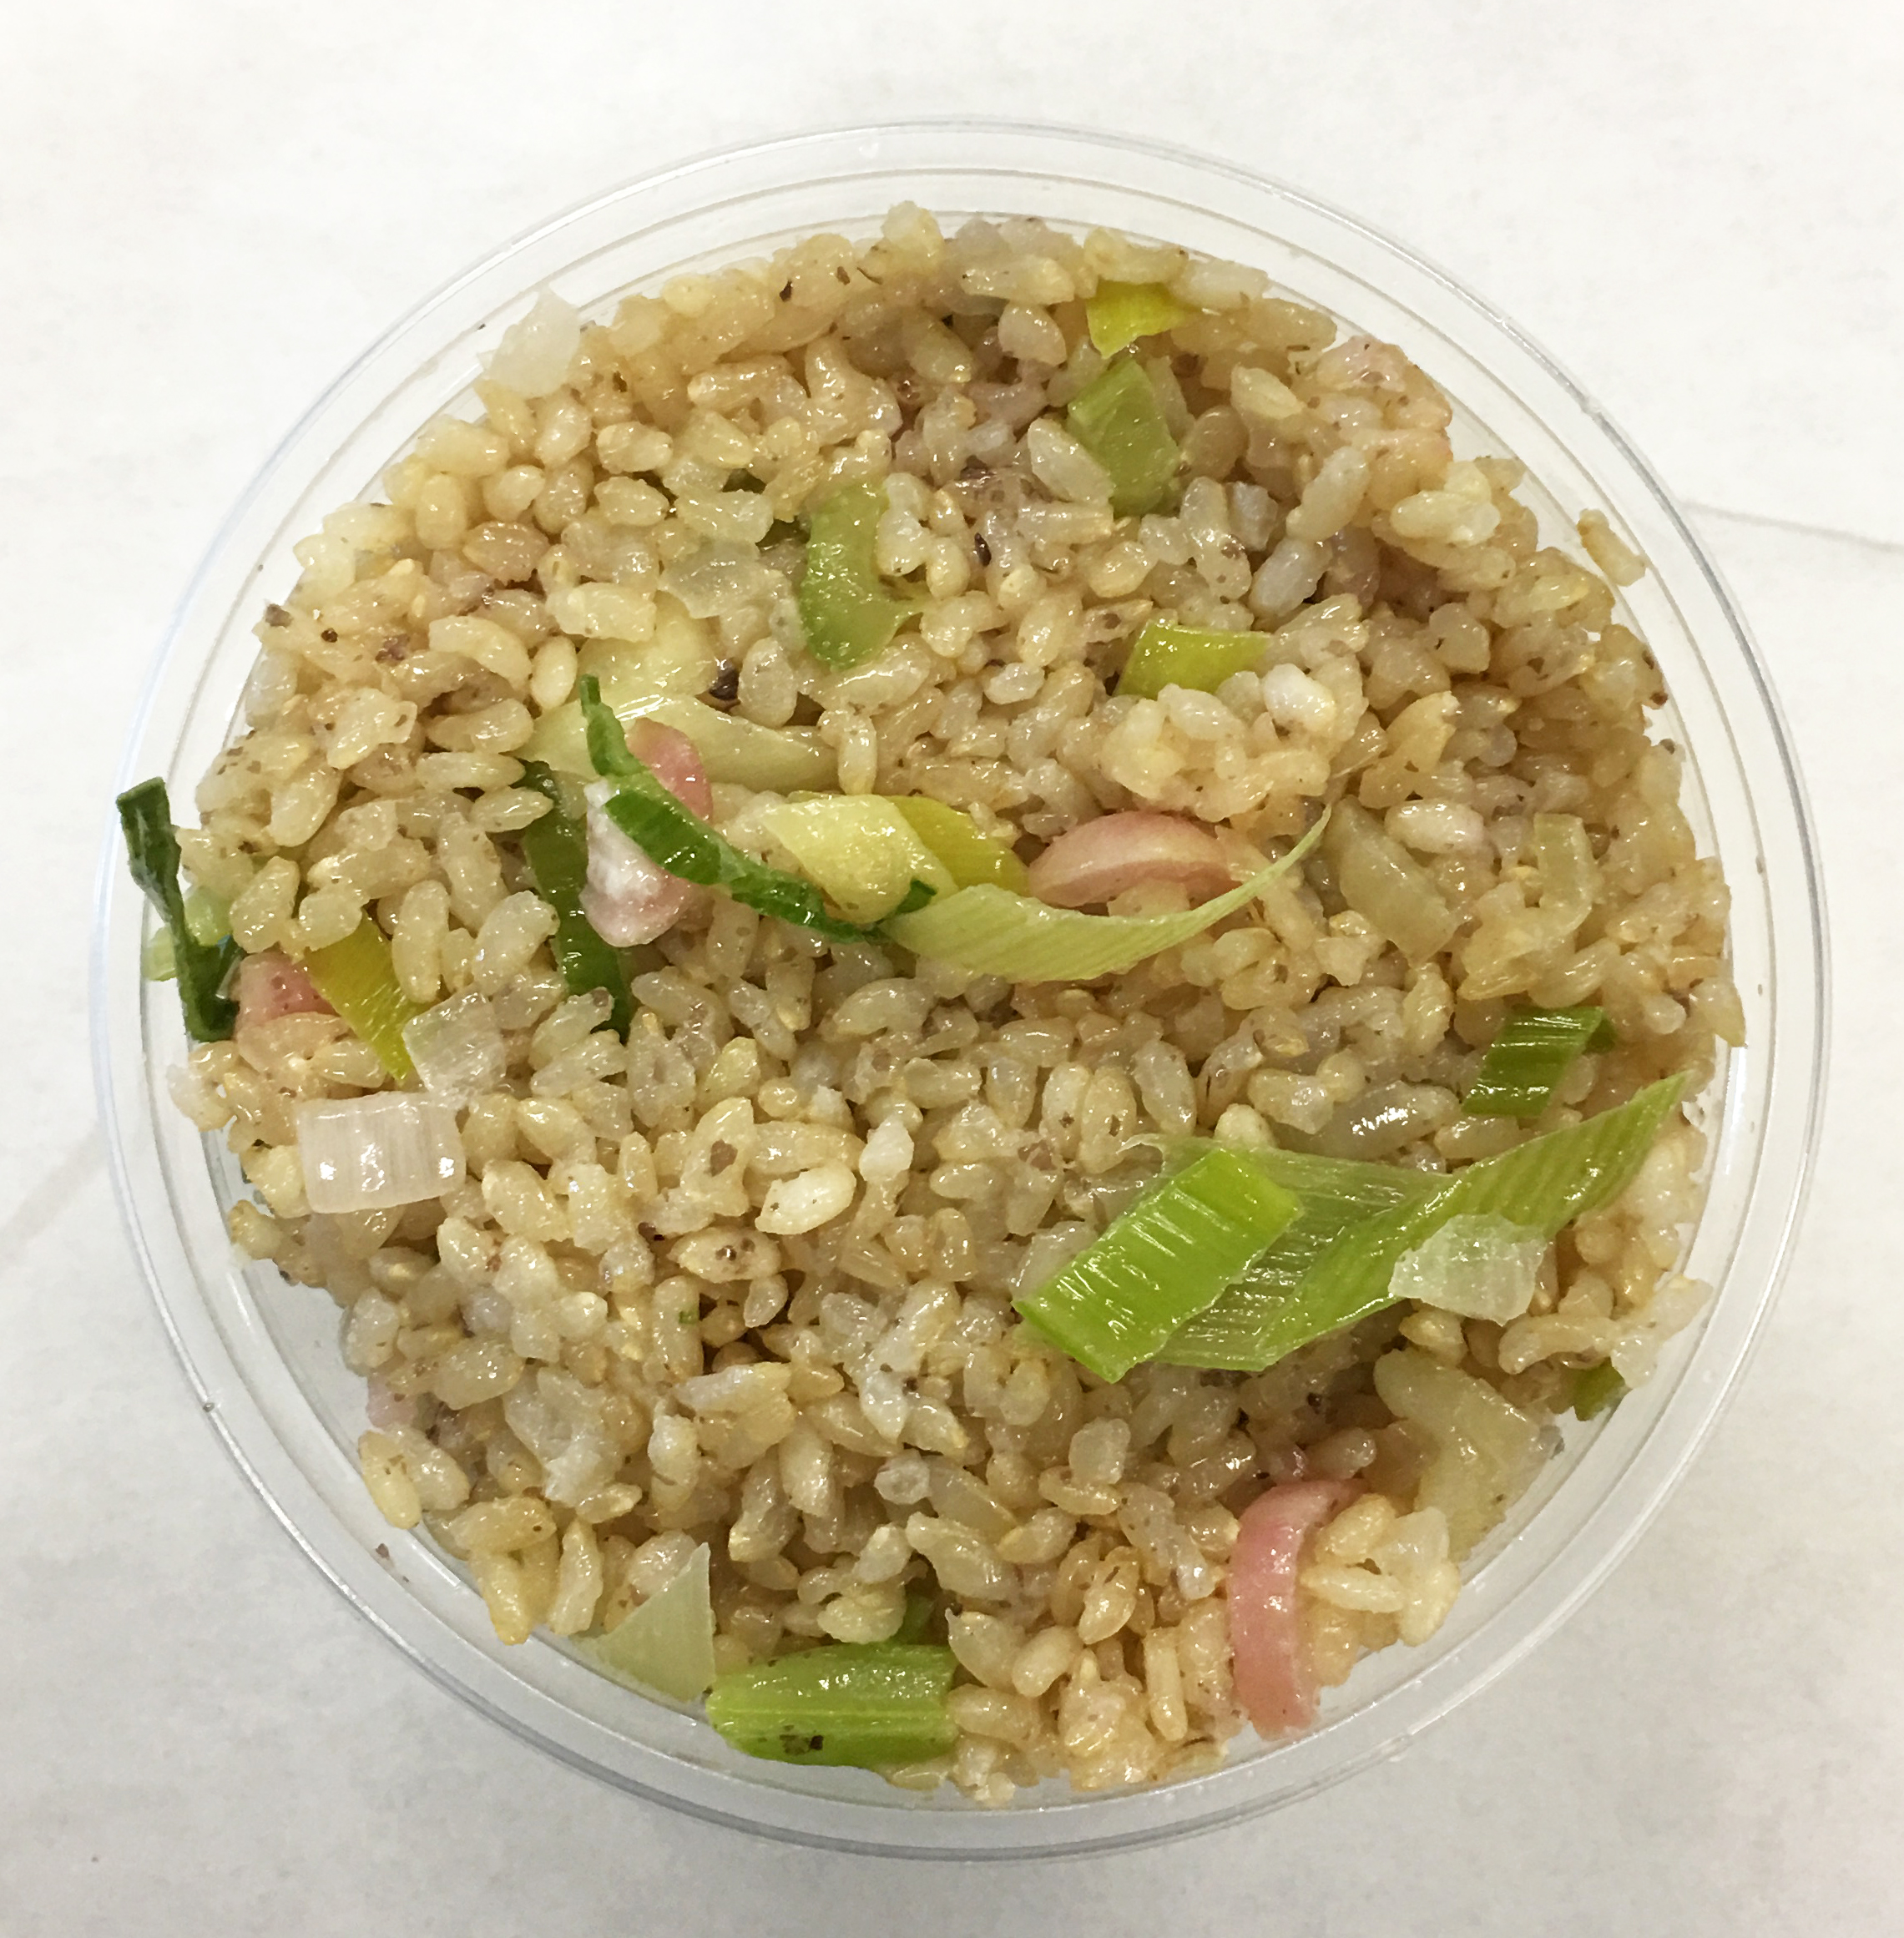 Brown rice stir fry with celery, red radish and leeks.